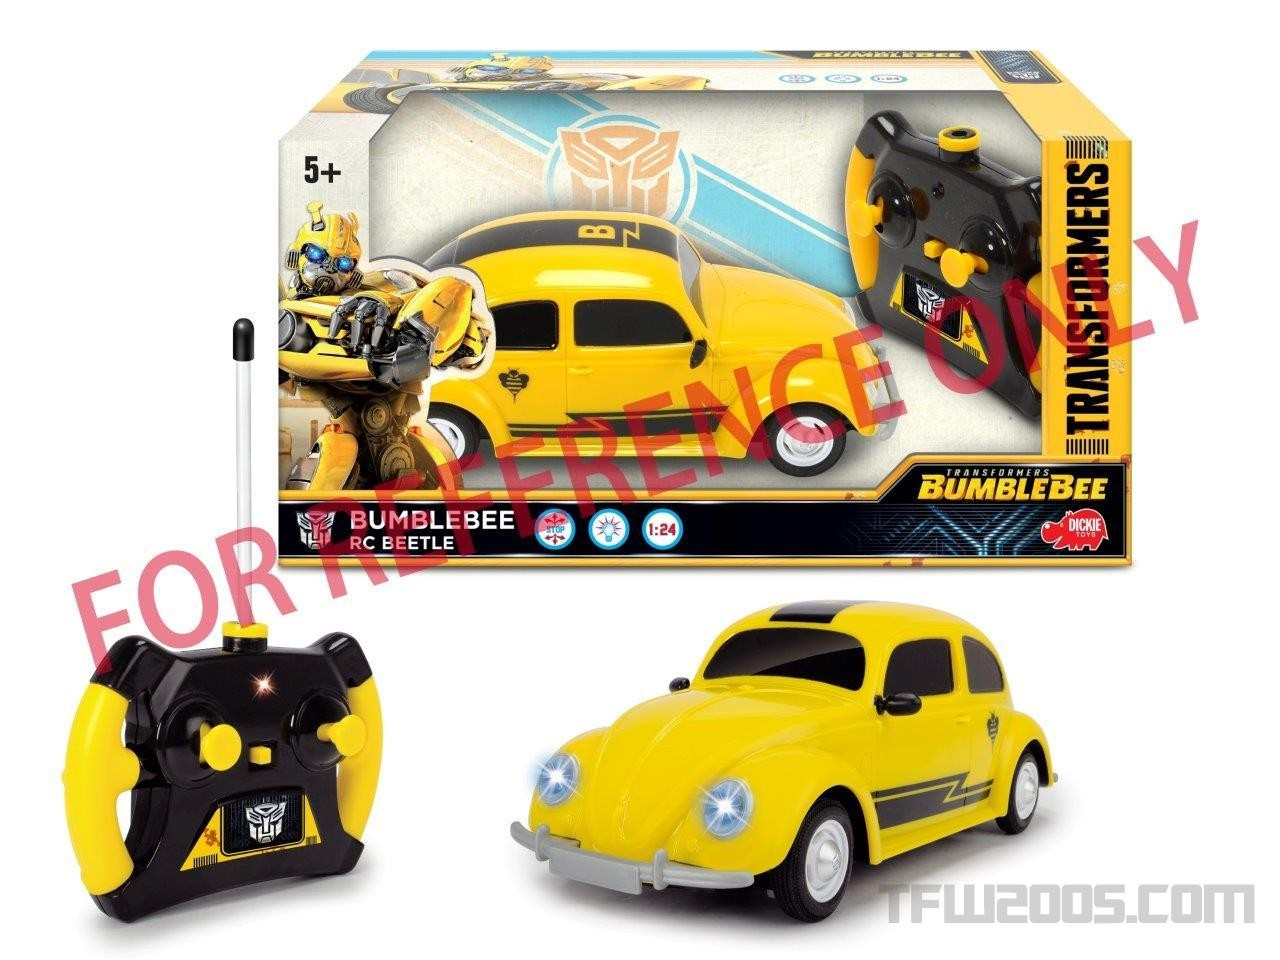 Jouets - Transformers:  Bumblebee Le Film 1516720813-transformers-bumblebee-the-movie-rc-simba